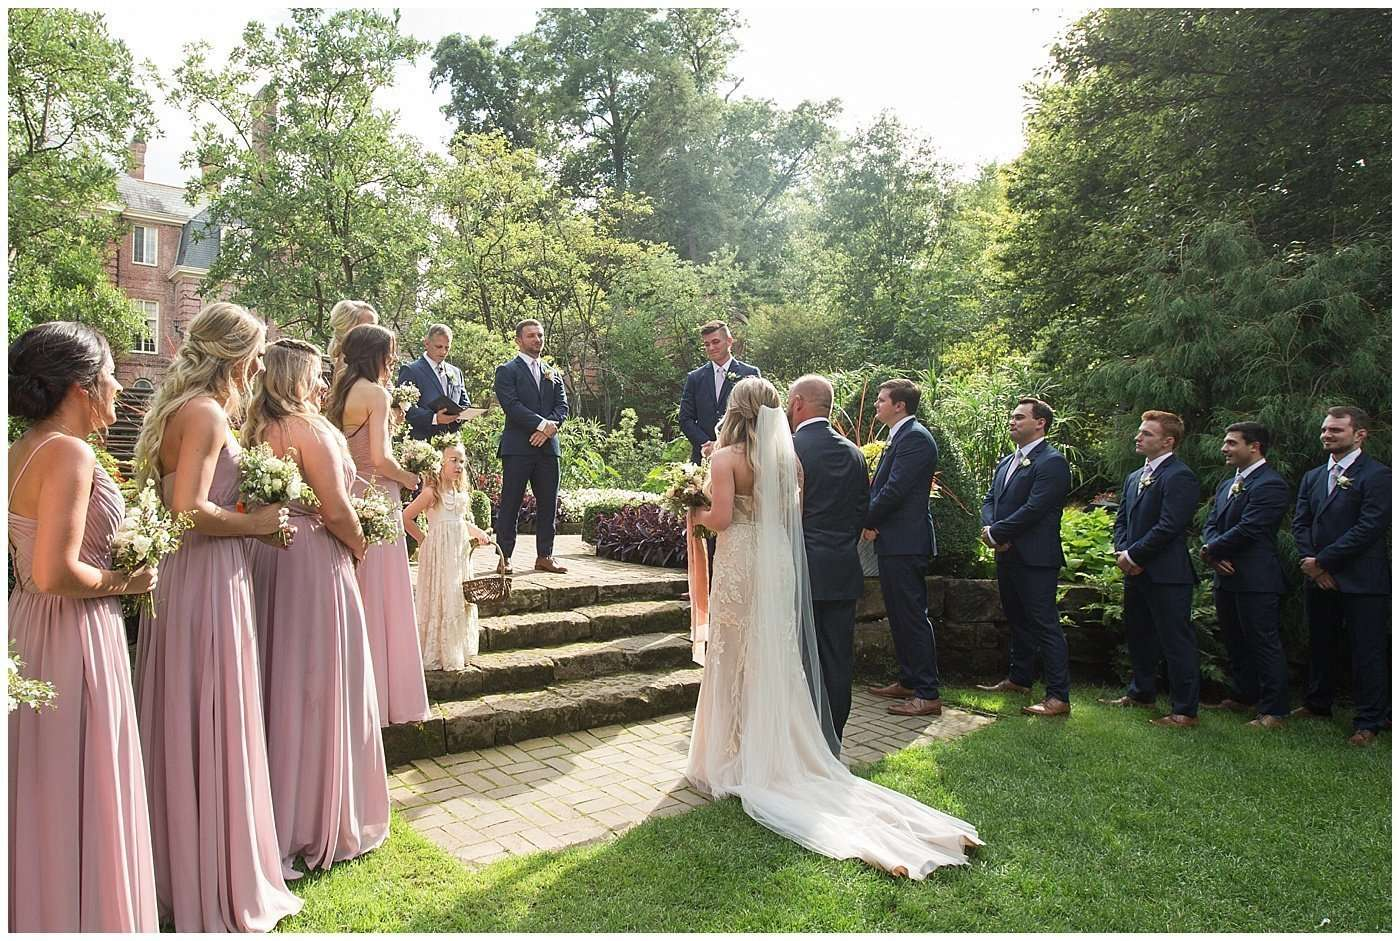 Jake & Abbie | A Swoon-Worthy Wedding at Breathtaking Garden Estate 102